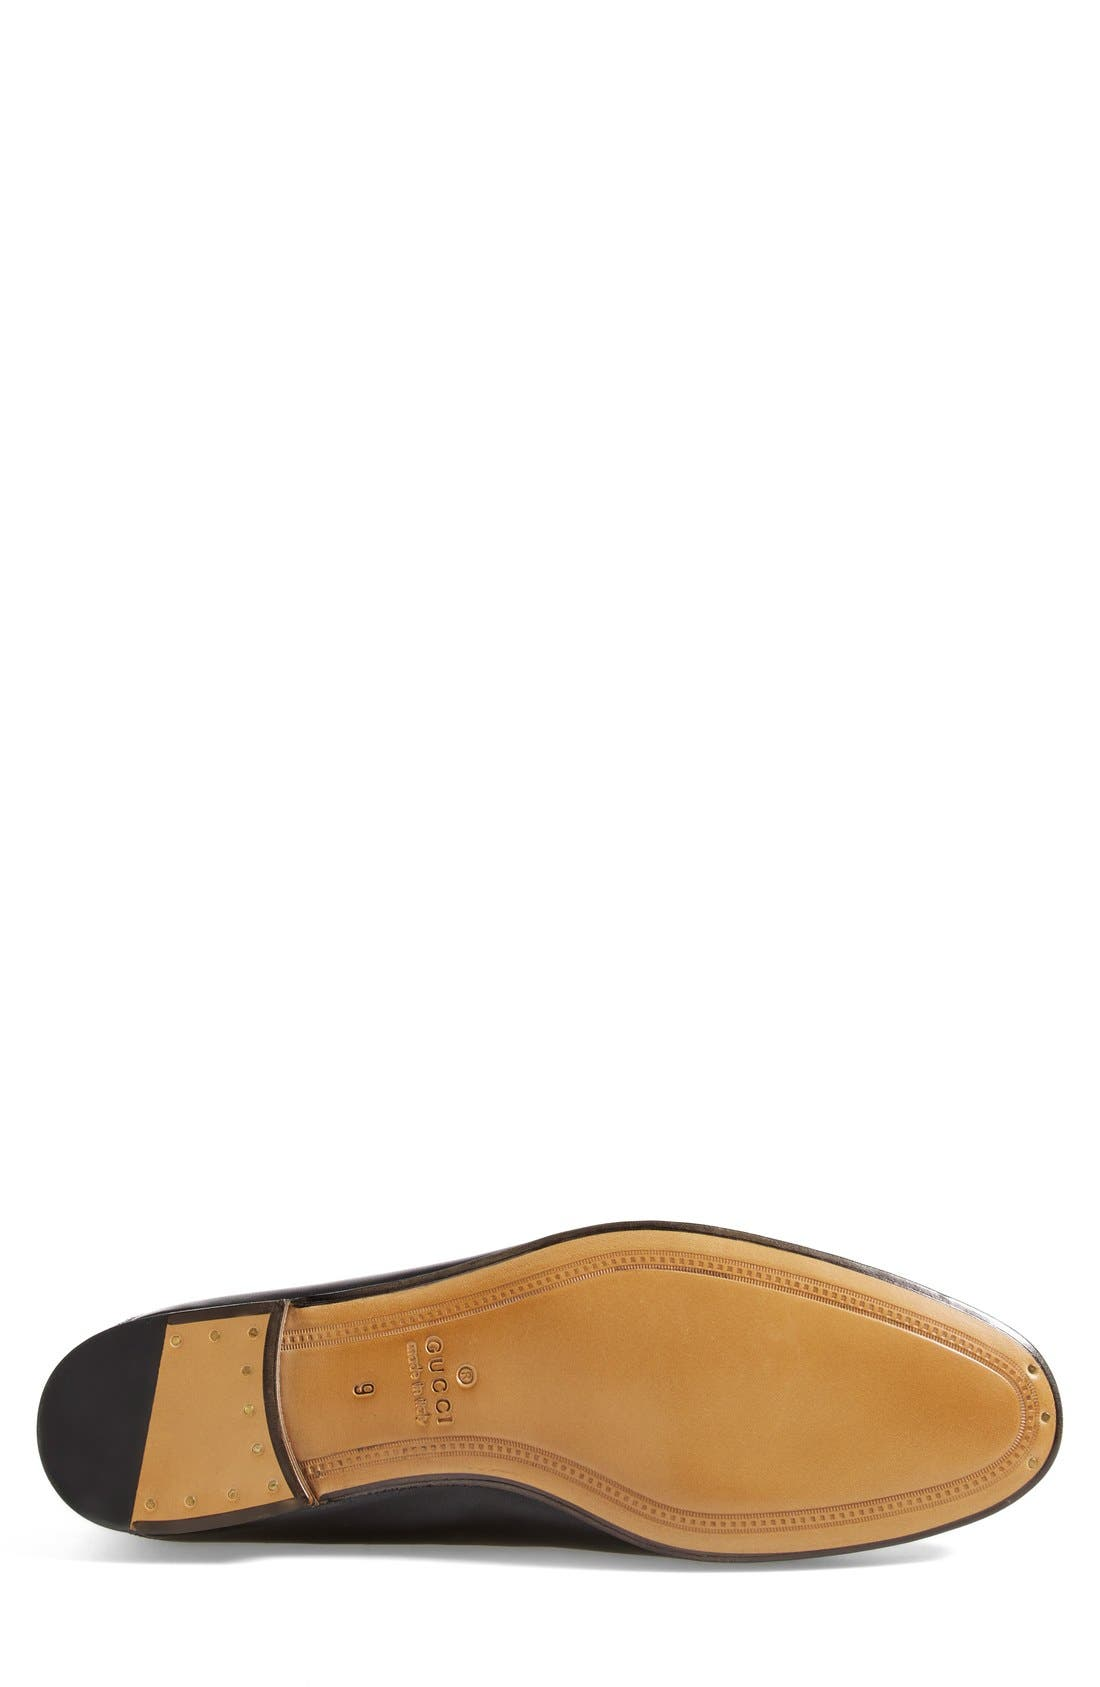 GUCCI, Brixton Leather Loafer, Alternate thumbnail 5, color, NERO LEATHER